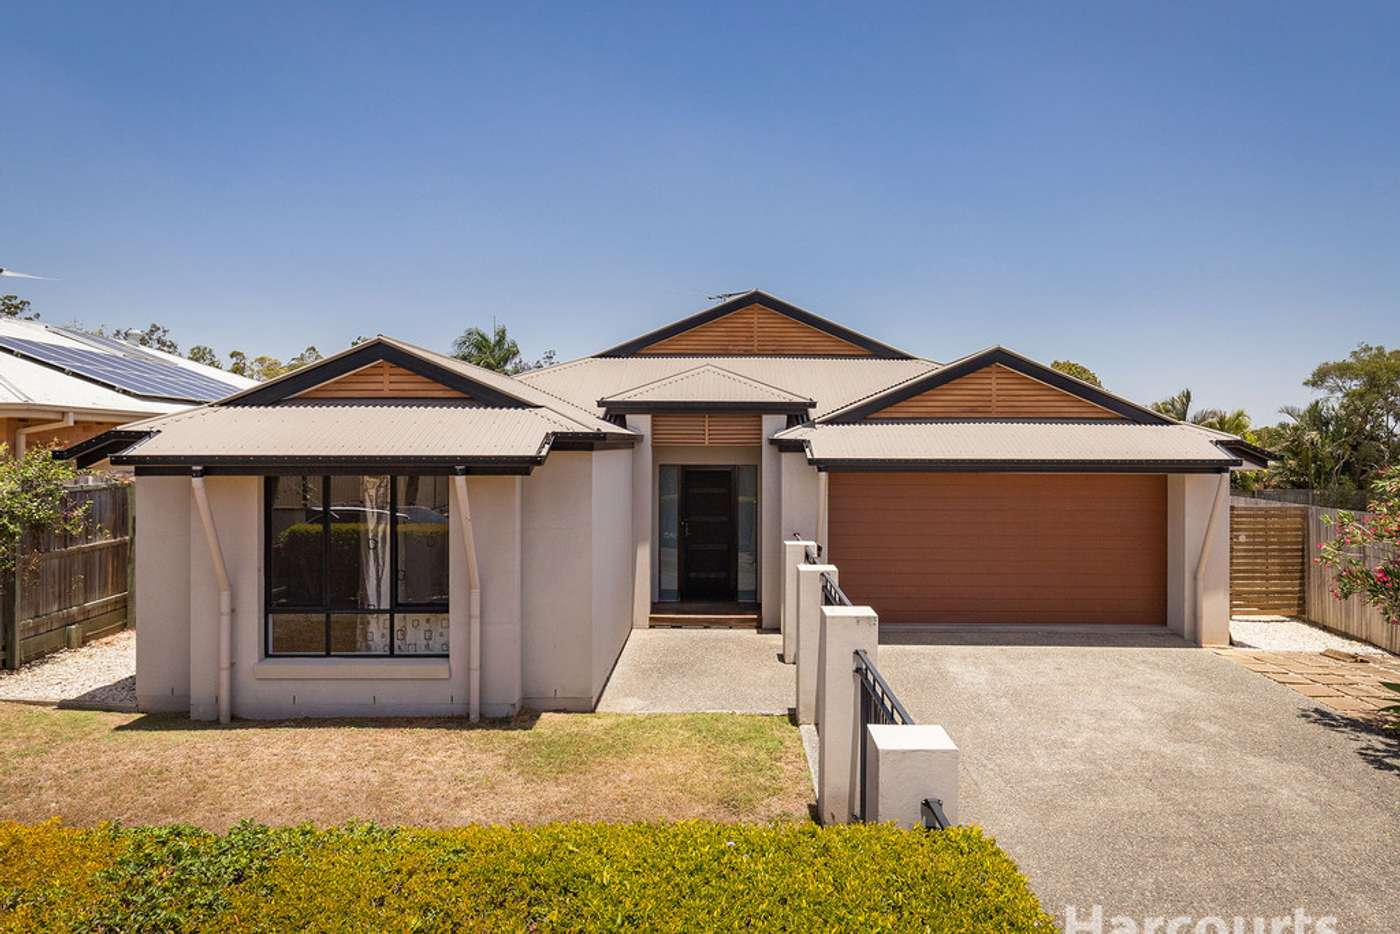 Main view of Homely house listing, 78 Woodlark Crescent, Parkinson QLD 4115